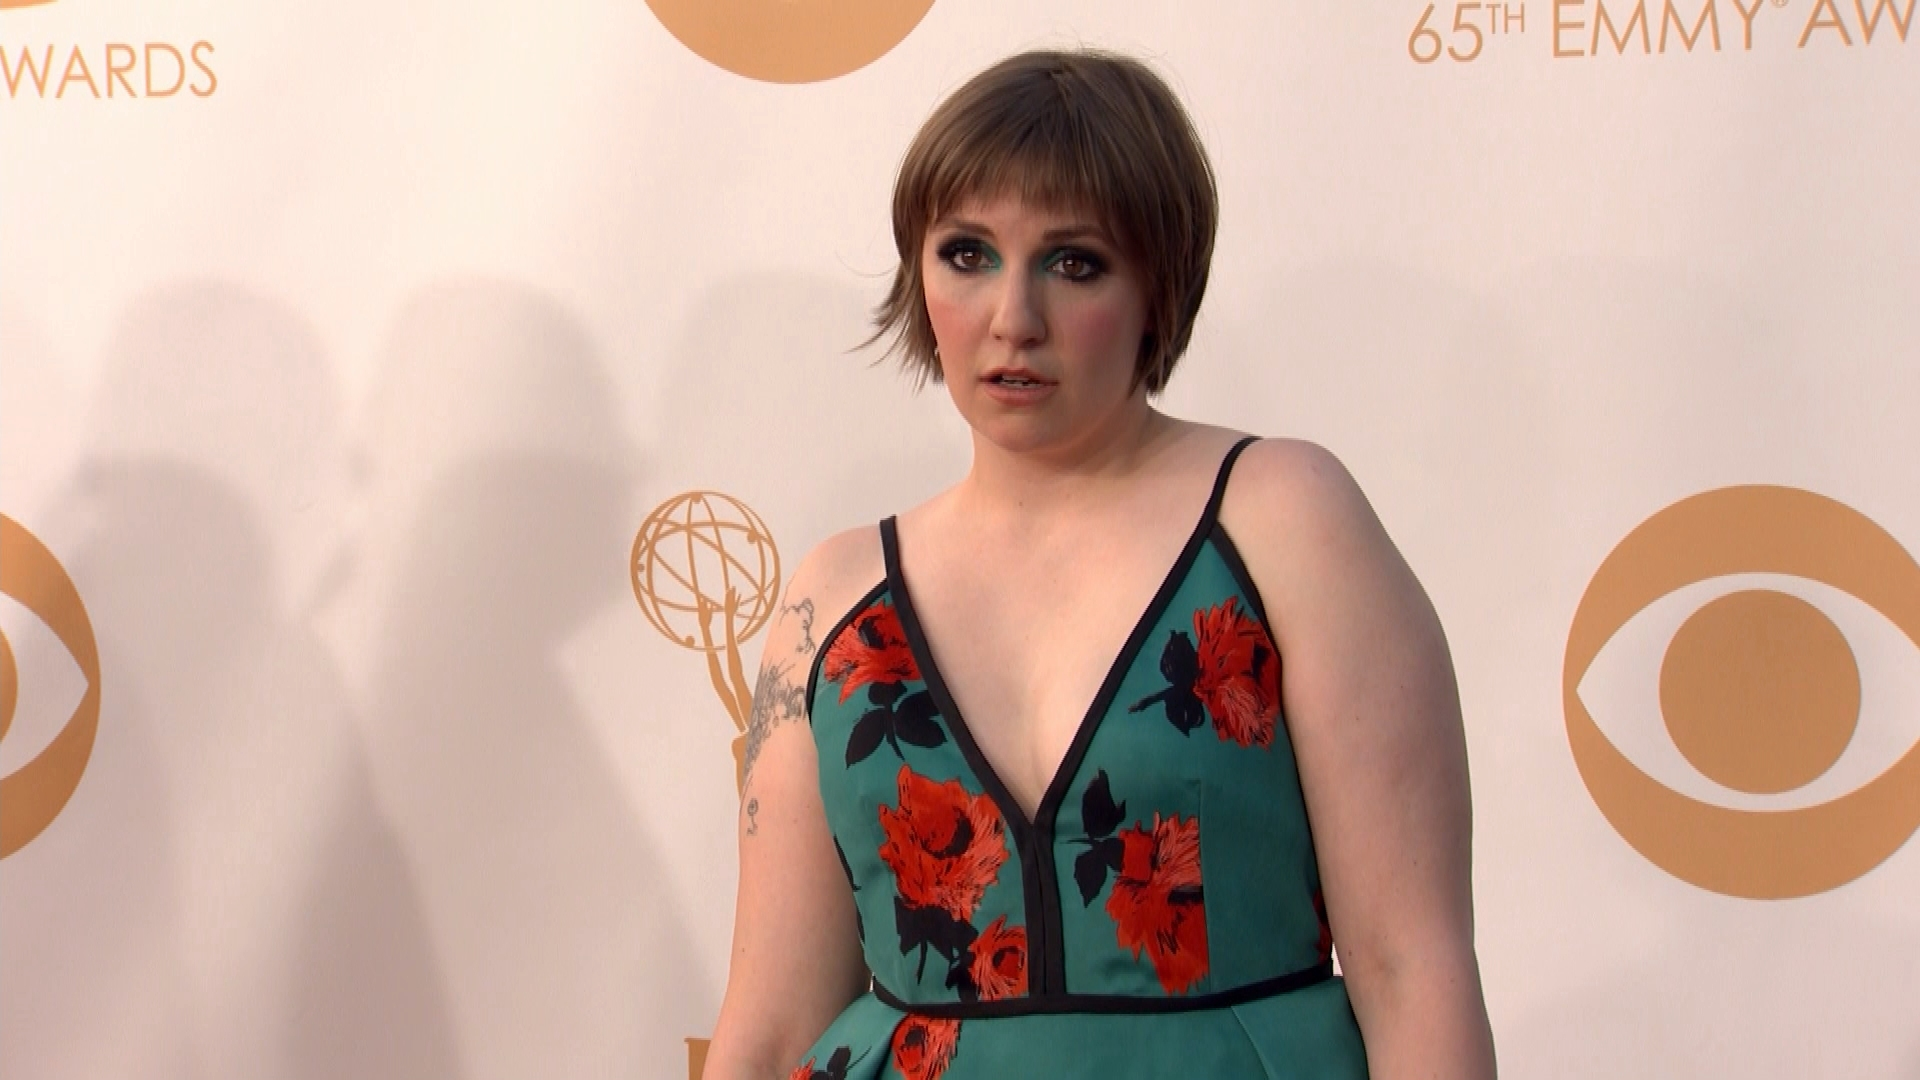 Lena Dunham Accuses Mag of Photoshopping Her Body